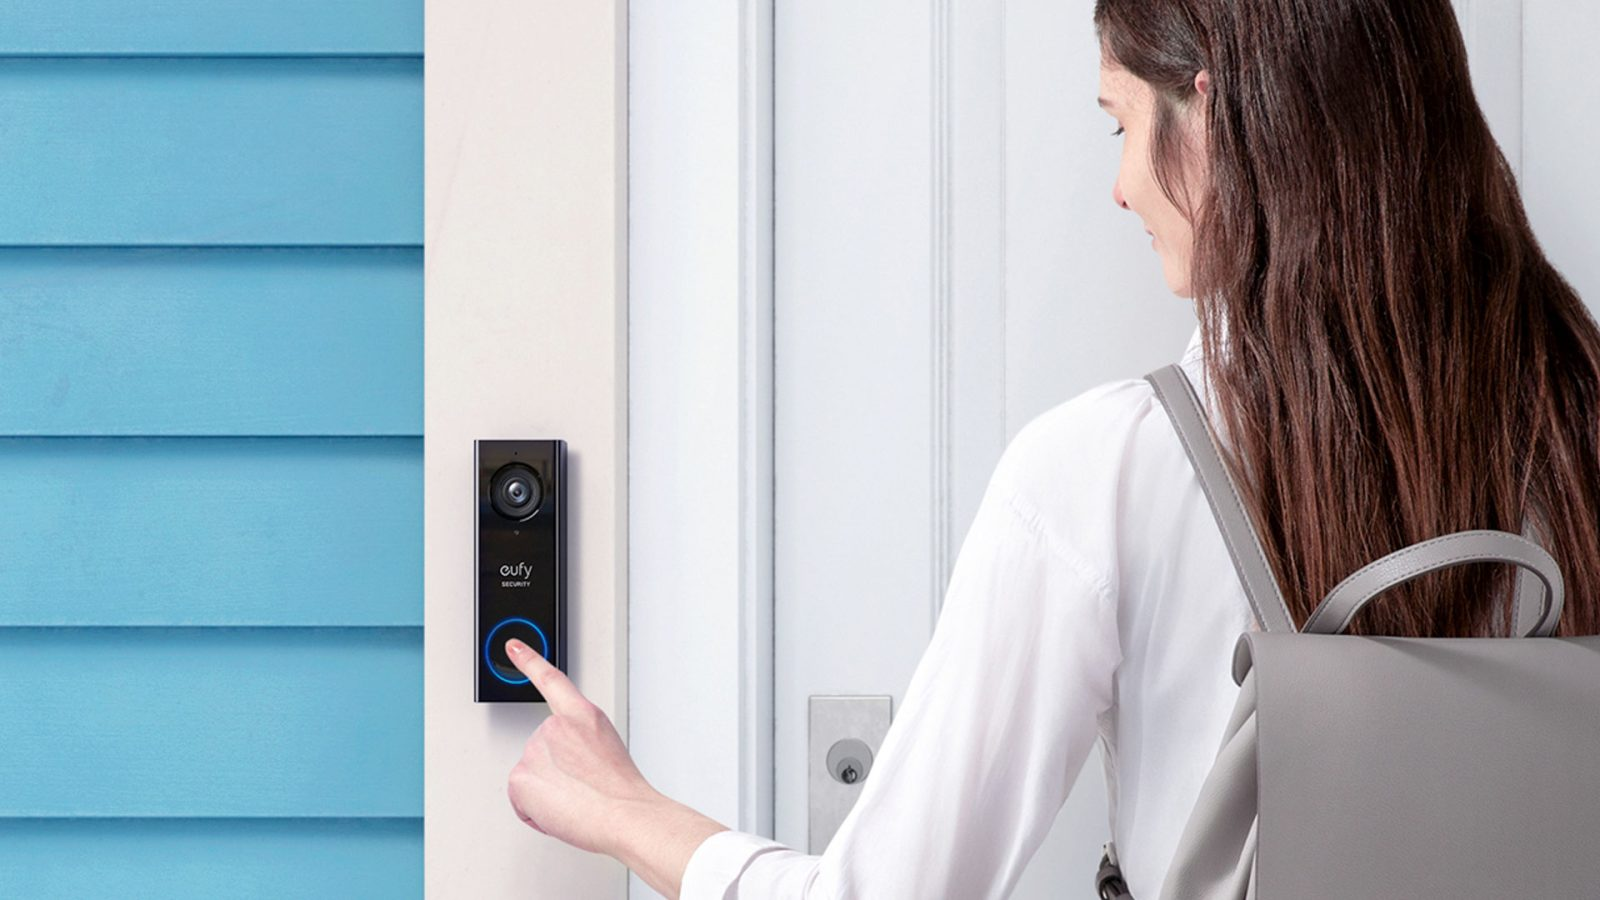 Anker's July 4th sale discounts accessories, new video doorbell, more from $10